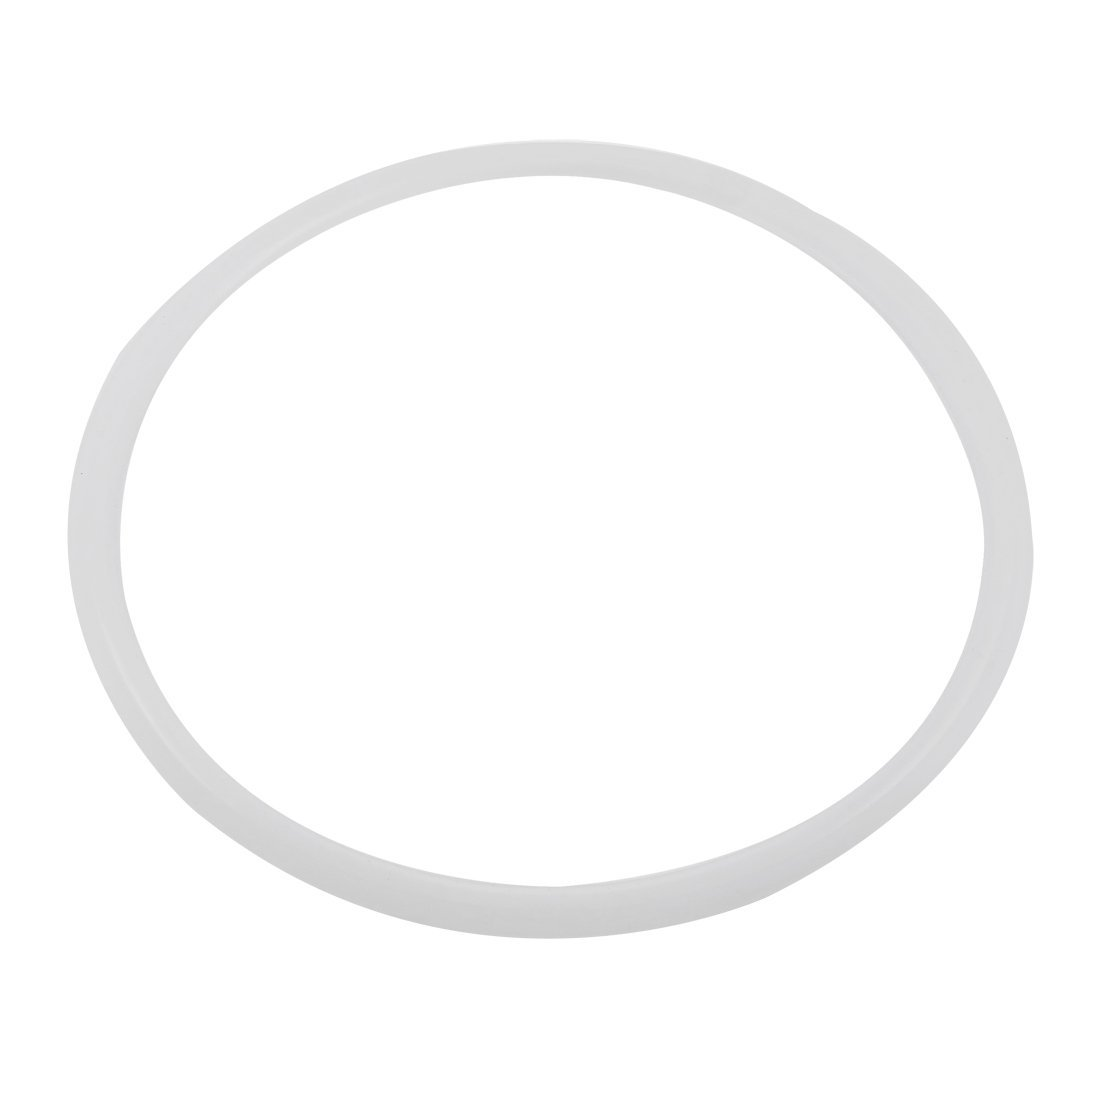 26cm Inner Dia Clear Silicone Pressure Cooker Sealing Ring White Electric Pressure Cooker Replacements Parts electric pressure cookers electric pressure cooker double gall 5l electric pressure cooker rice cooker 5 people